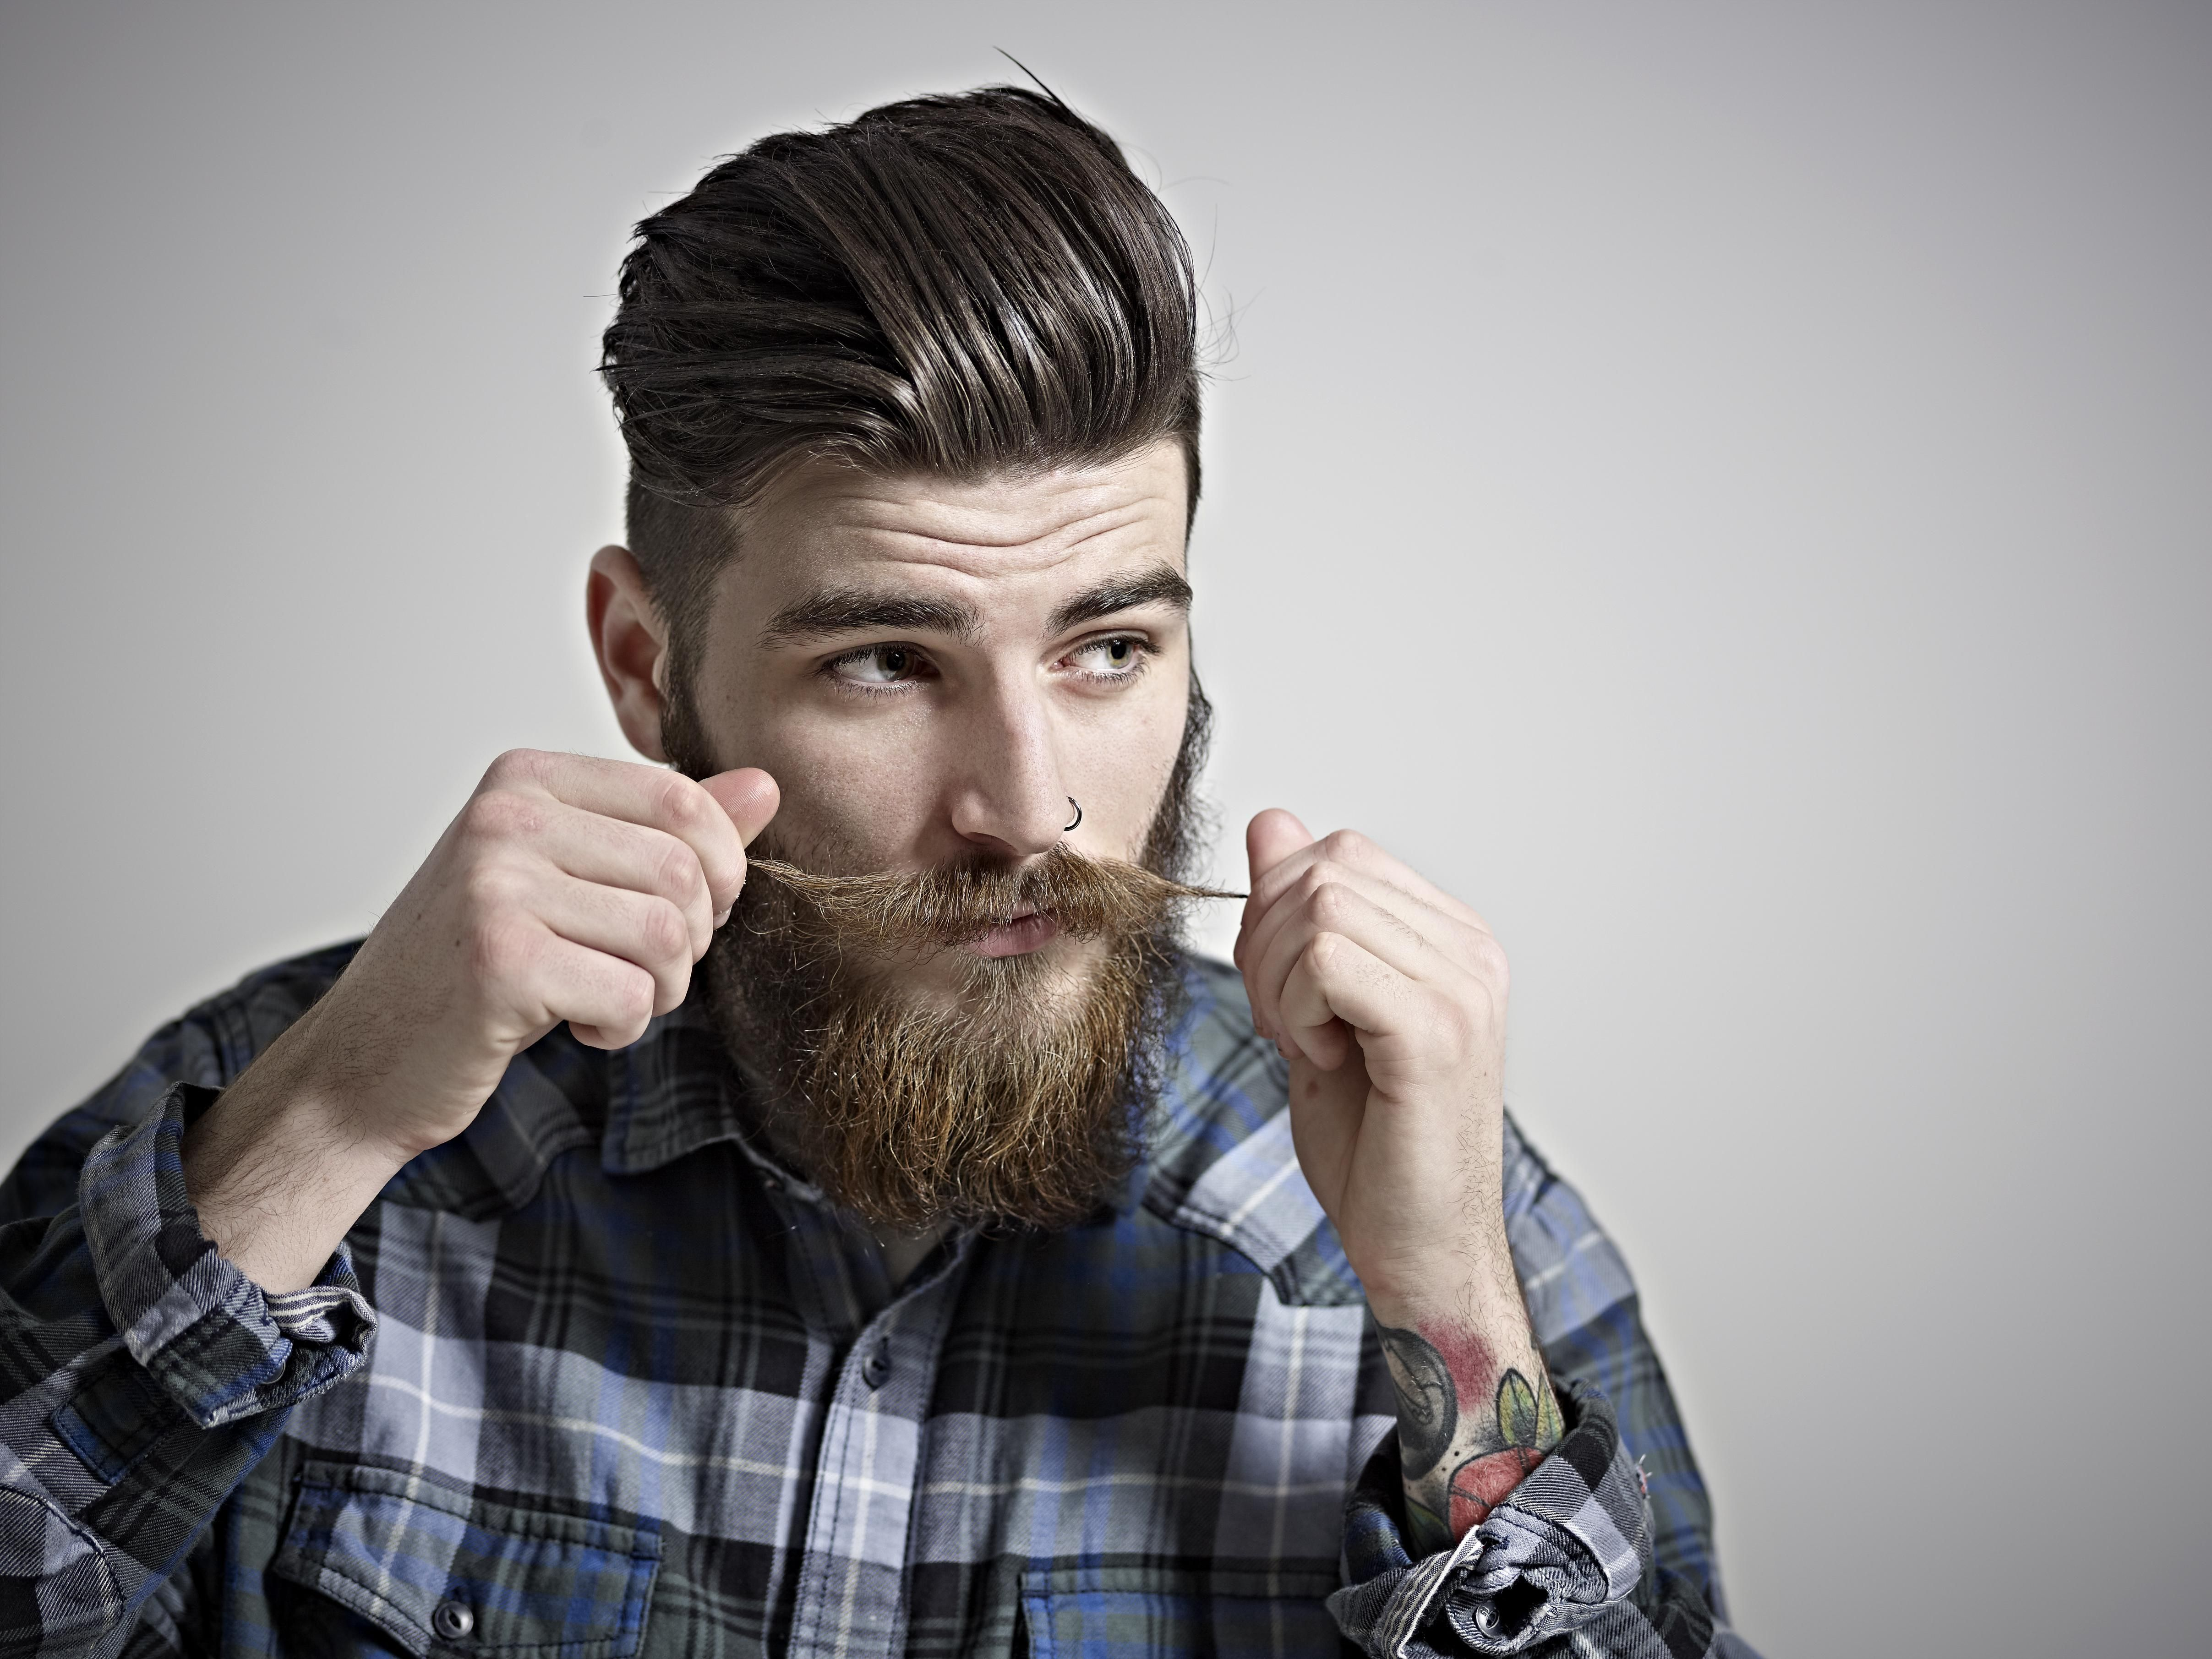 Since this will be the most epic, comprehensive article on bearding on the Internet, I've broken it up into three sections – Building a Beard Foundation, The Psychology of Growing a Beard, and styling and maintaining a beard.